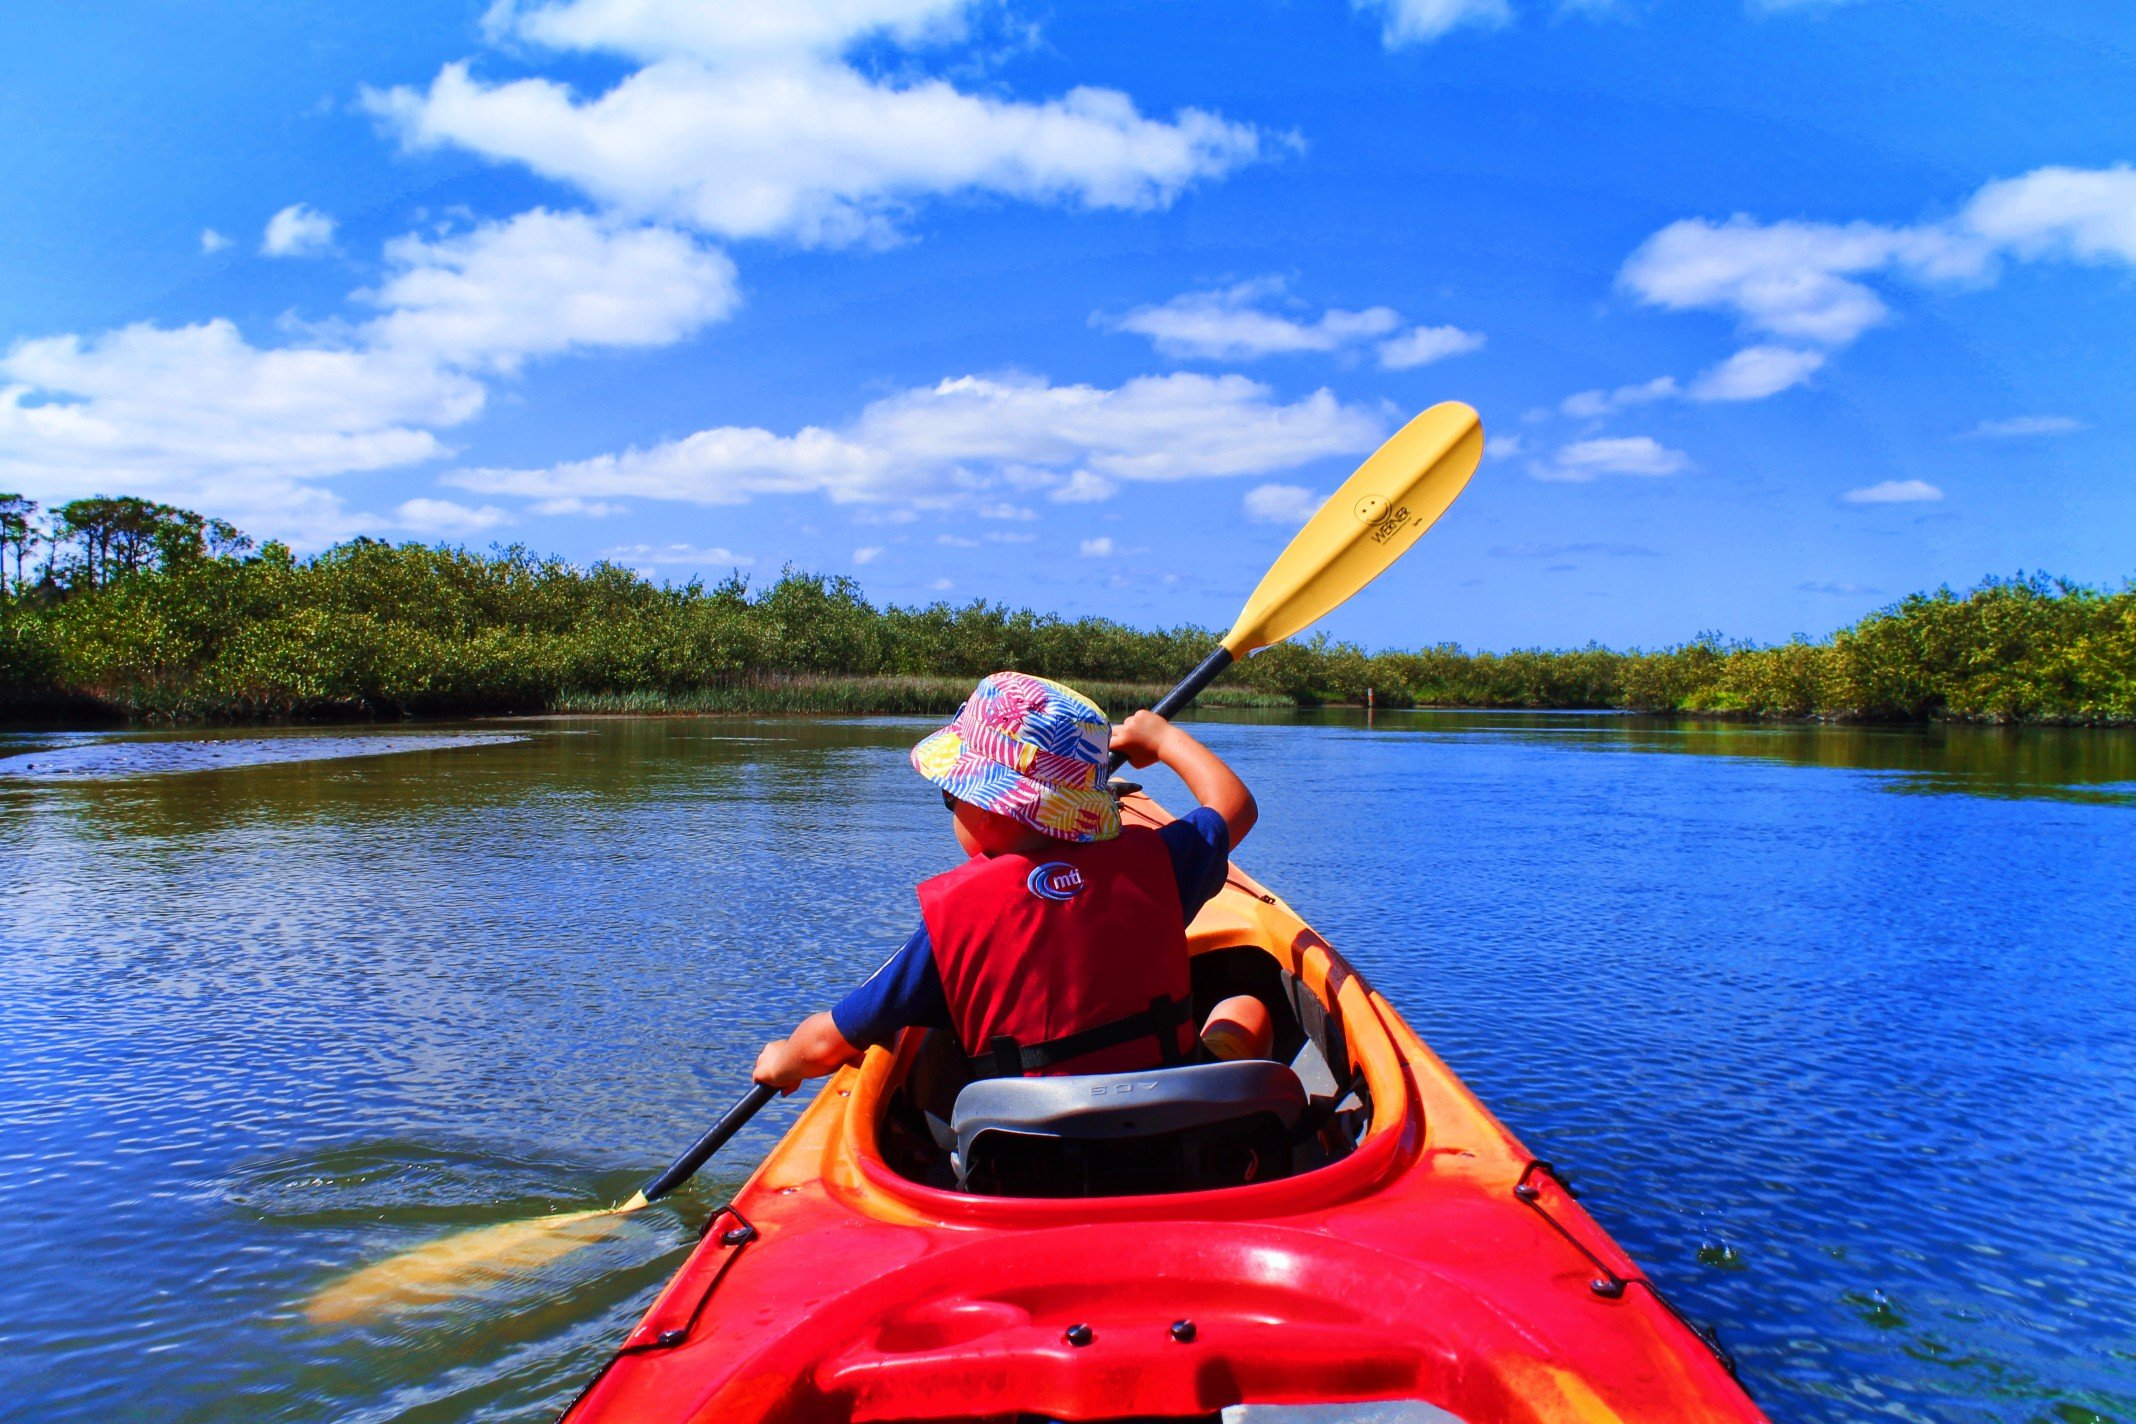 Taylor Family Matanzas River kayaking Ripple Effect Ecotours St Augustine 4